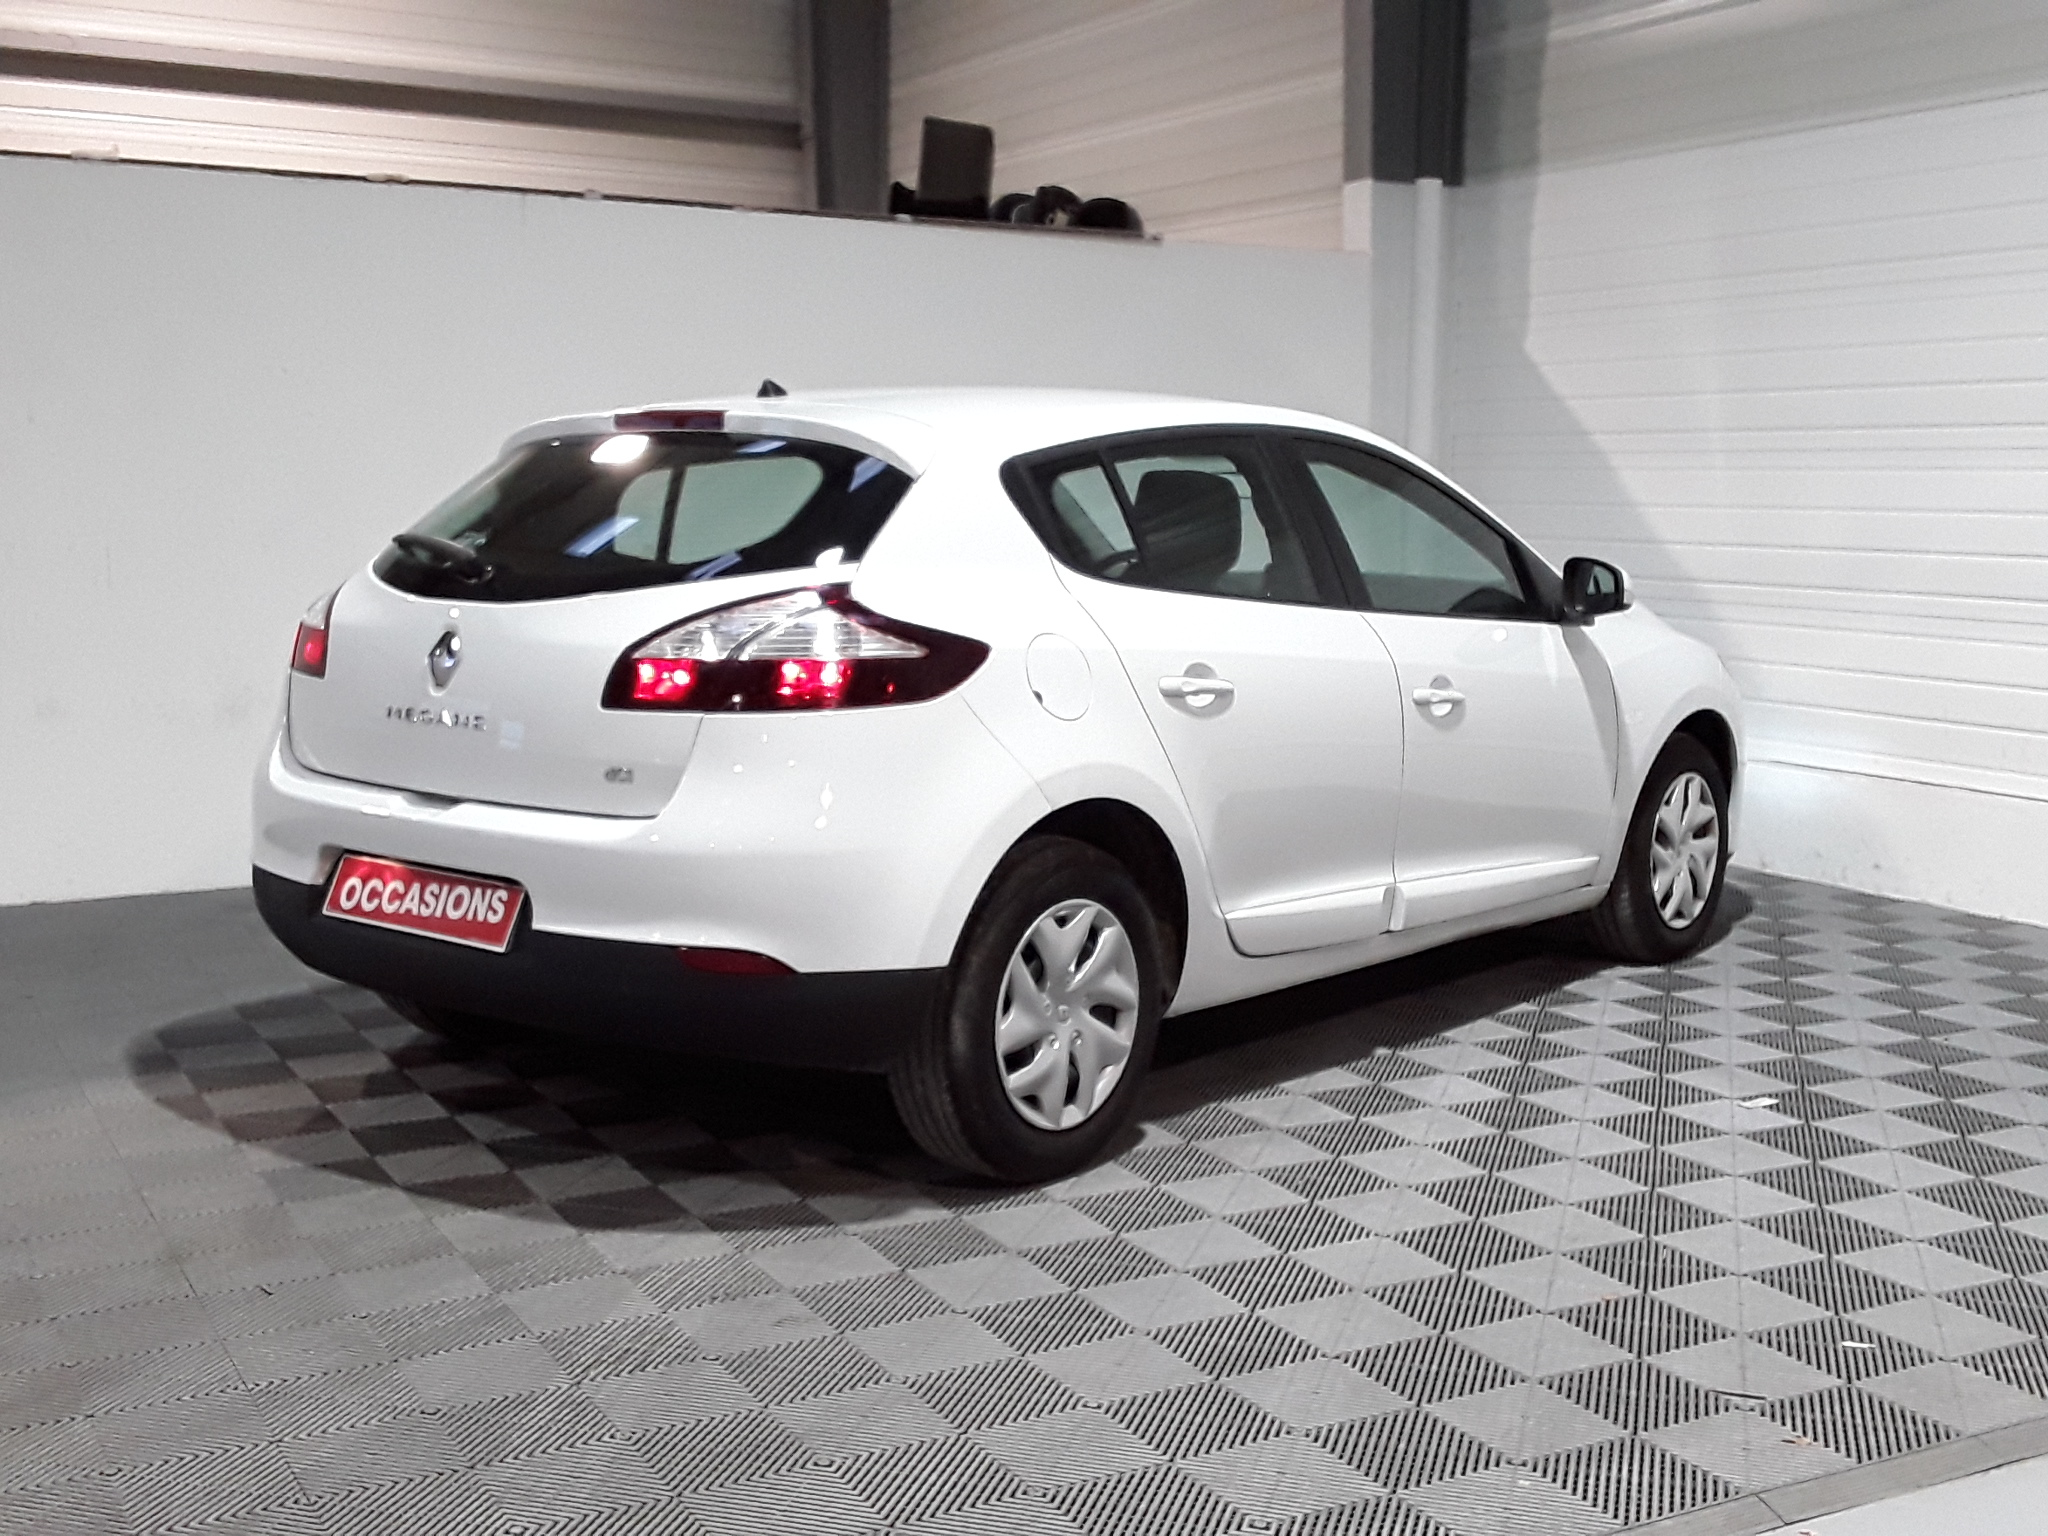 RENAULT MEGANE III SOCIETE 2016 à 7500 € - Photo n°15